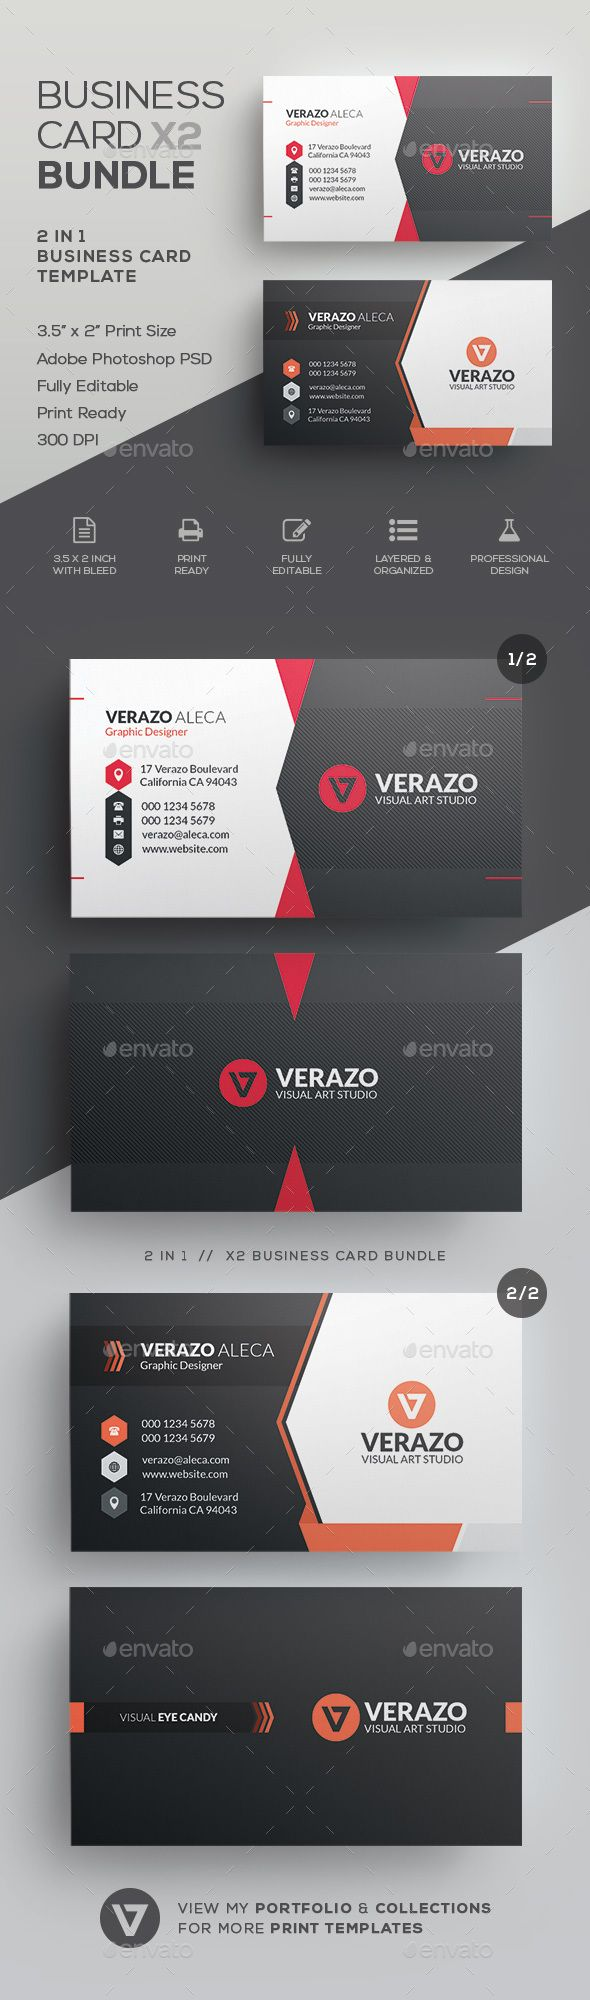 Need More High Quality Business Card View My Business Card